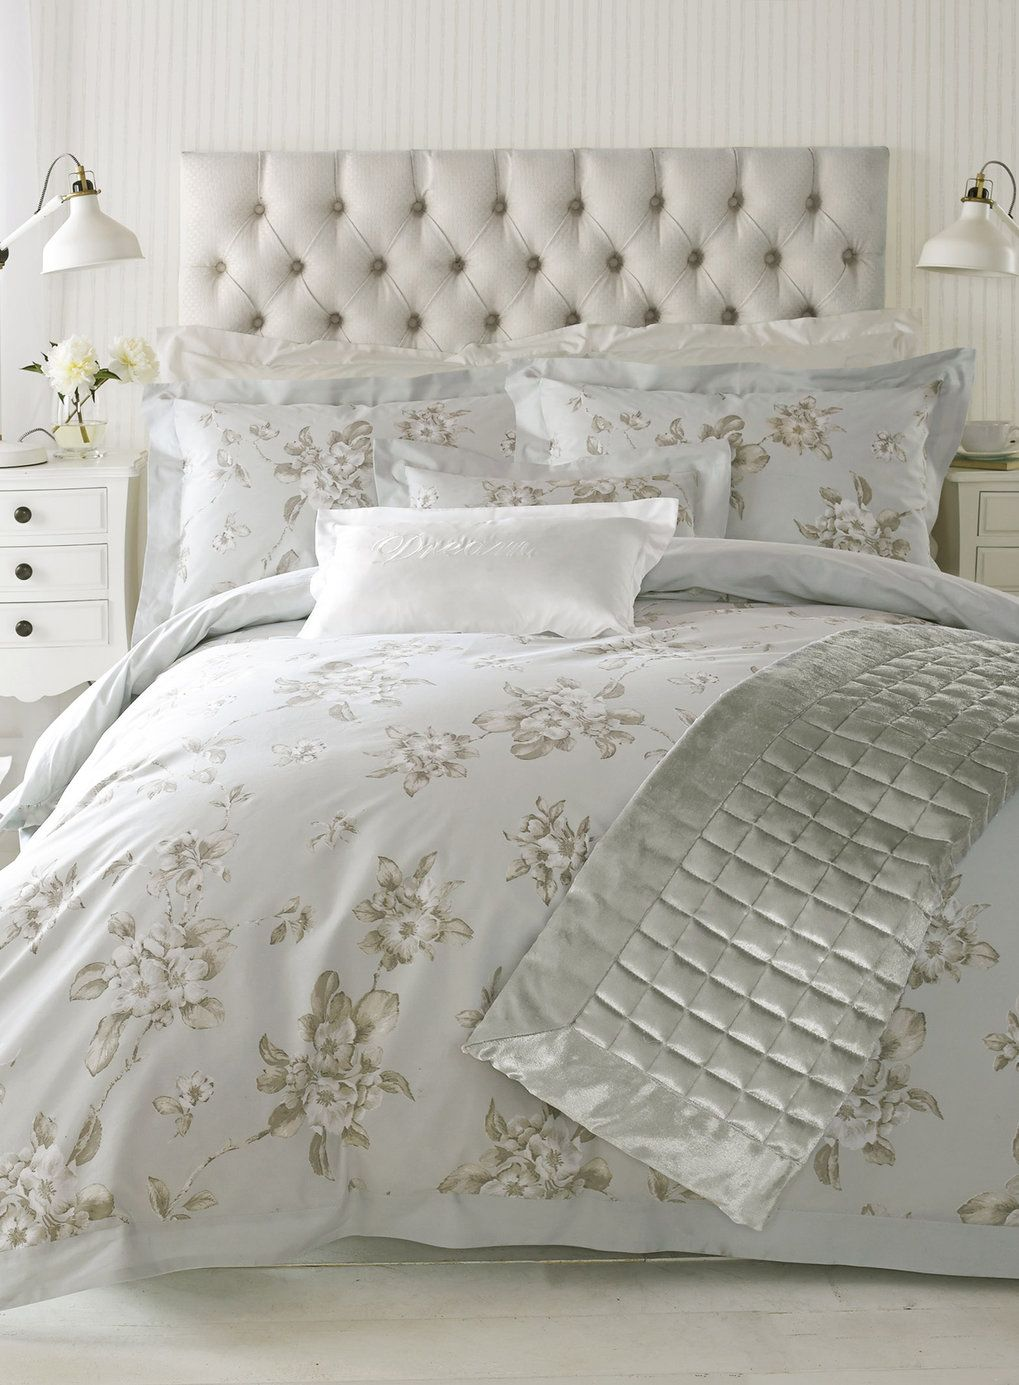 New From Bhs Nuneaton Have Recently Launched Their Exclusive Holly Willoughby Home Range Has Designed A Wide Of Products Beautiful